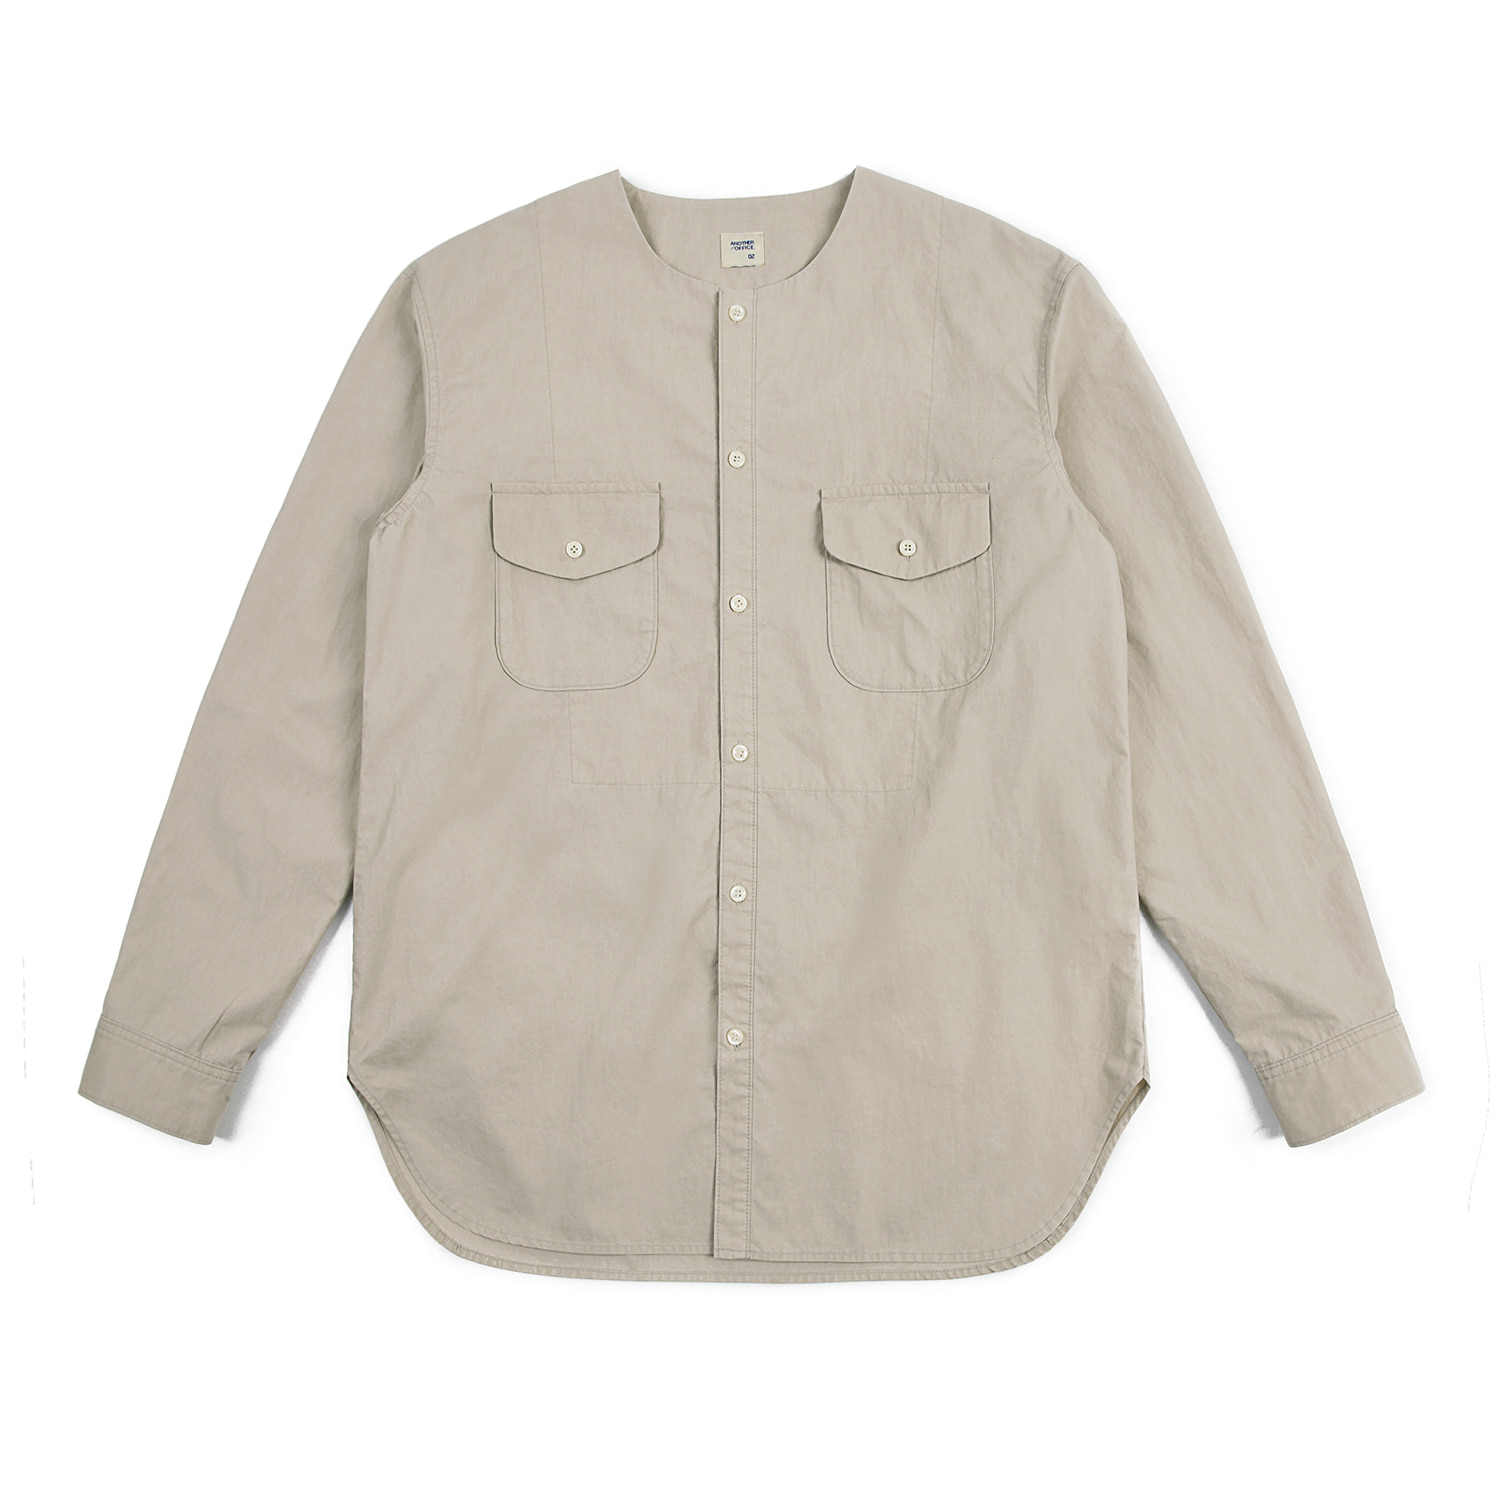 25%OFF_18SS/Typewriter Pigment Shirt (Oatmeal)